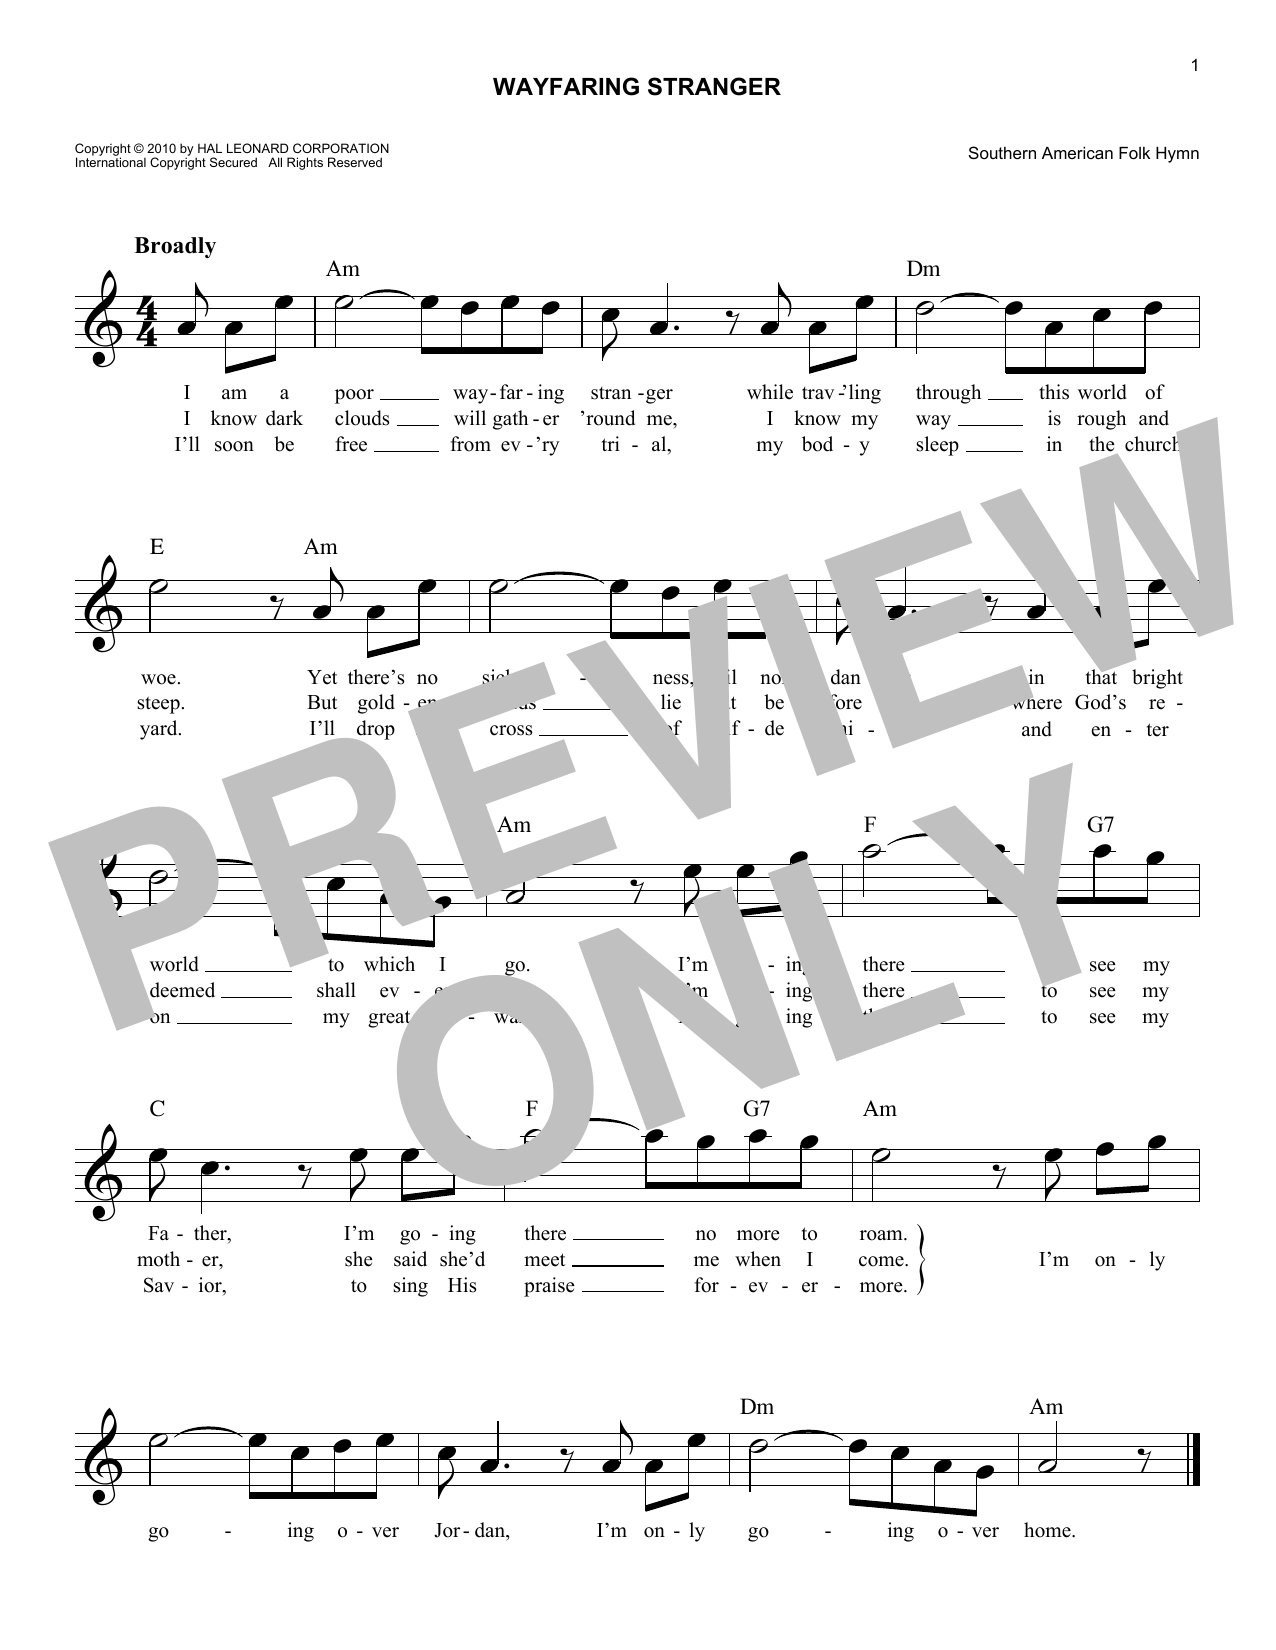 Wayfaring stranger chords by southern american folk hymn melody southern american folk hymn wayfaring stranger melody line lyrics chords hexwebz Choice Image